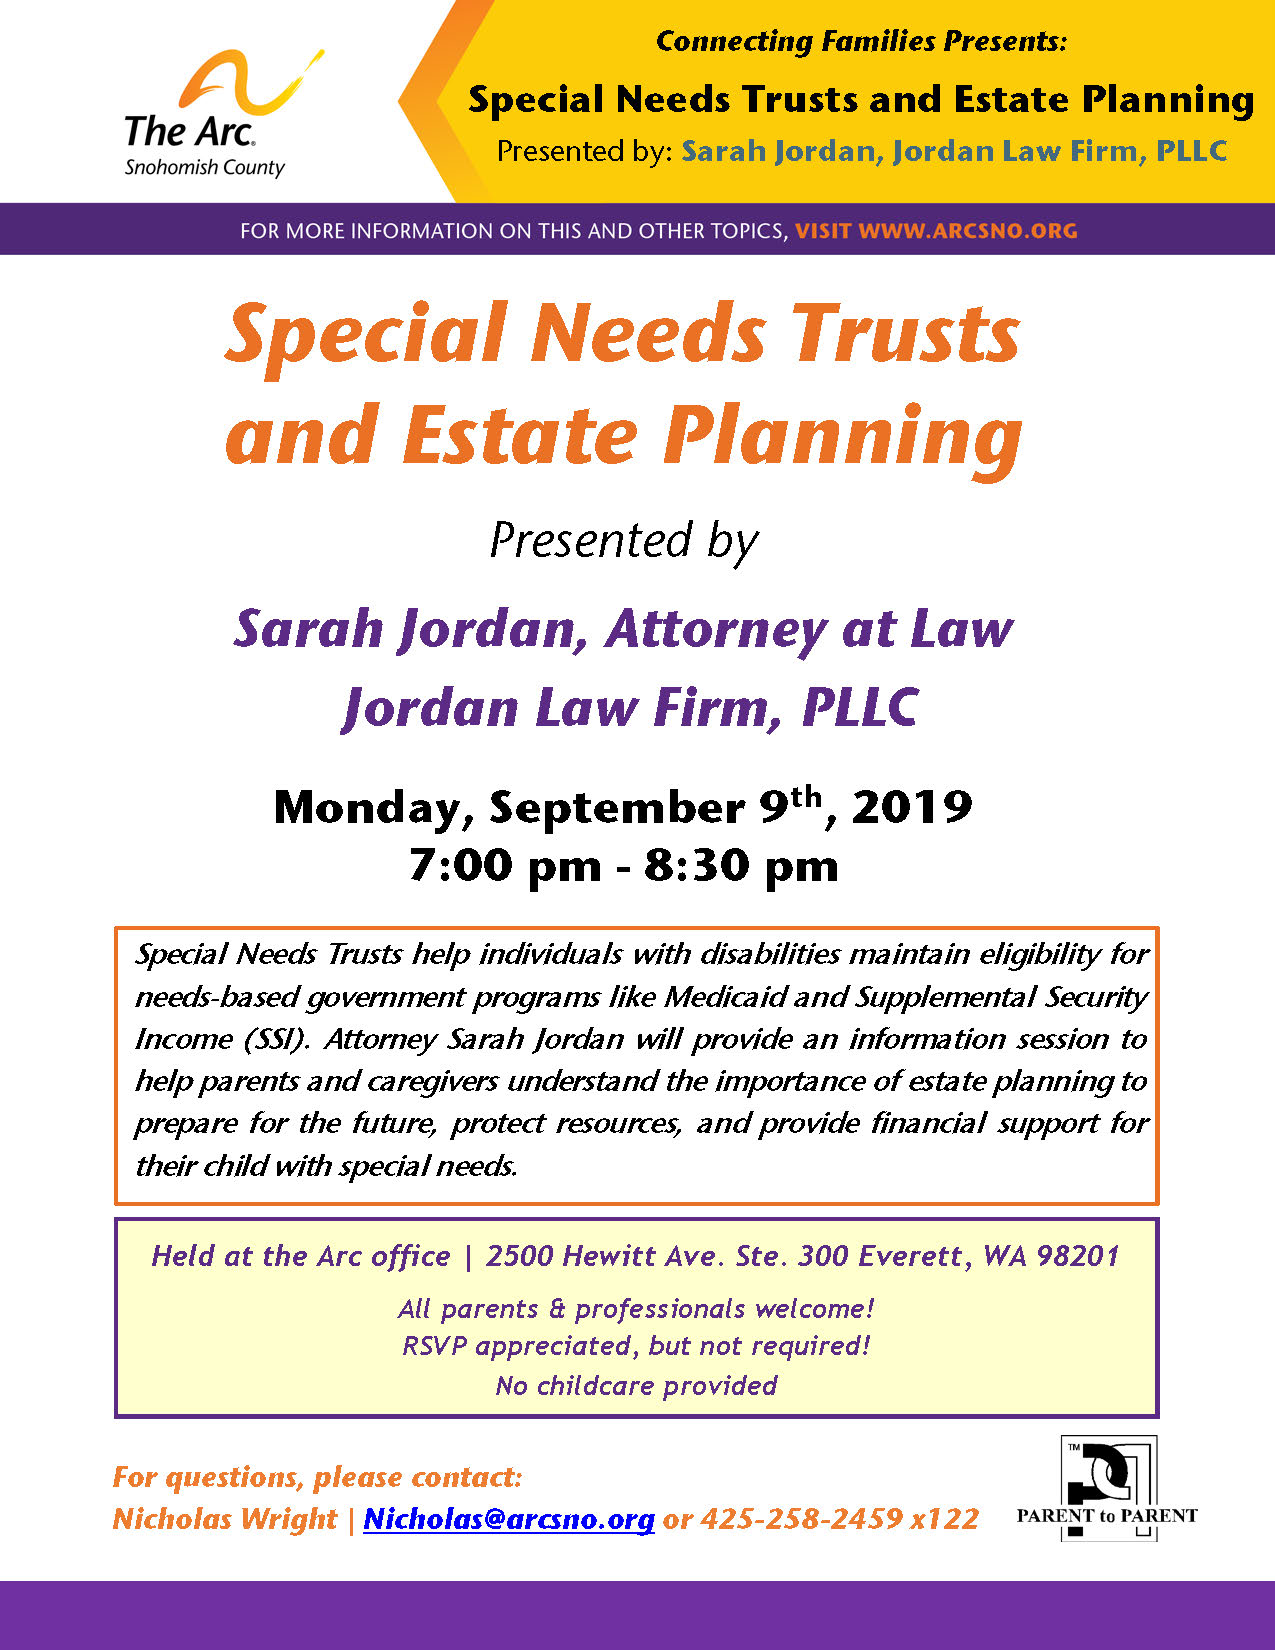 CF Sept2019 SNT and Estate Planning